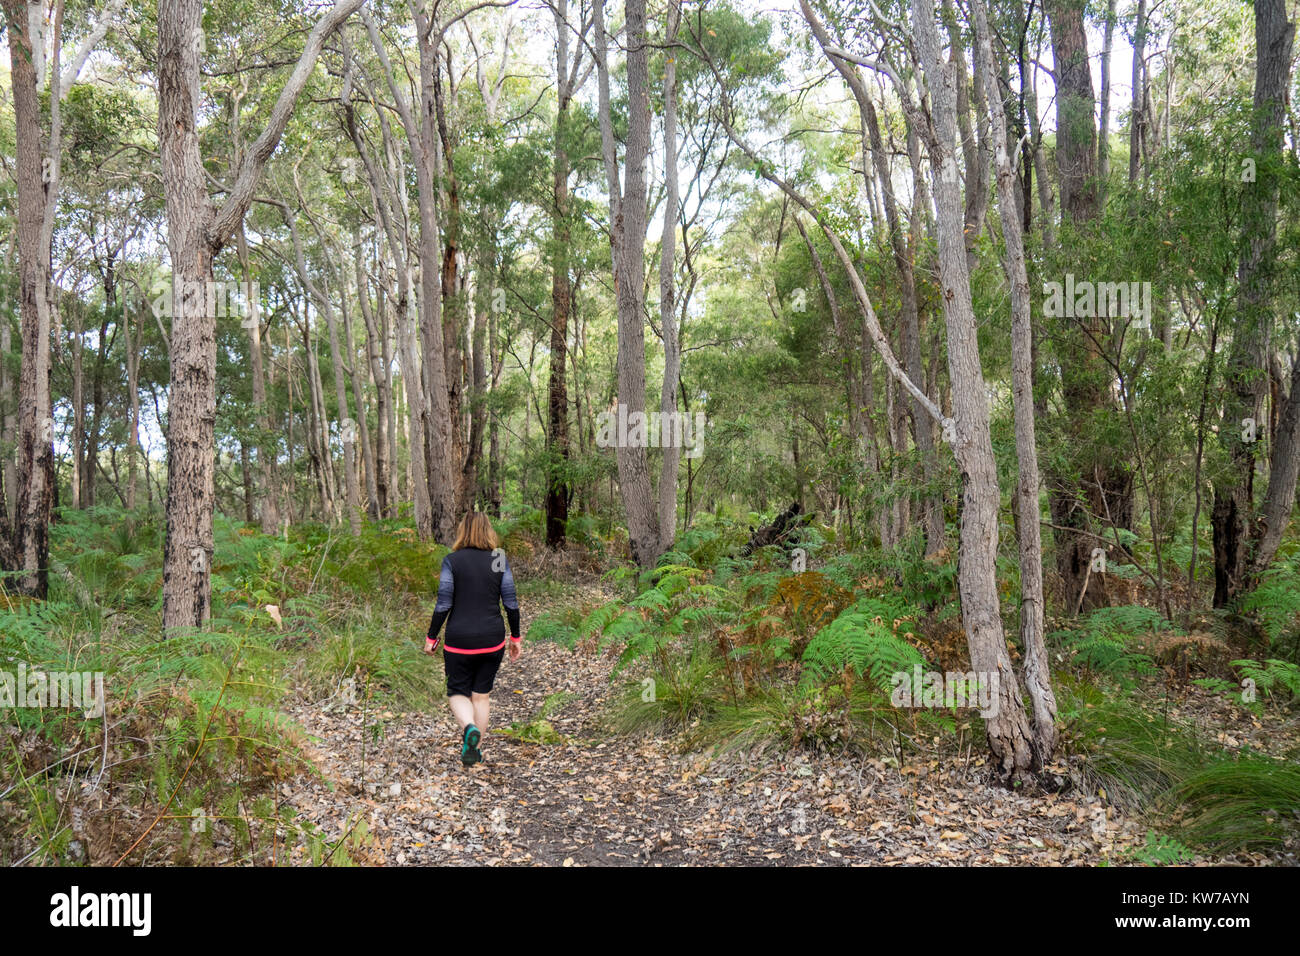 A woman walking along a track through a eucalyptus forest in Margaret River, Western Australia. Stock Photo